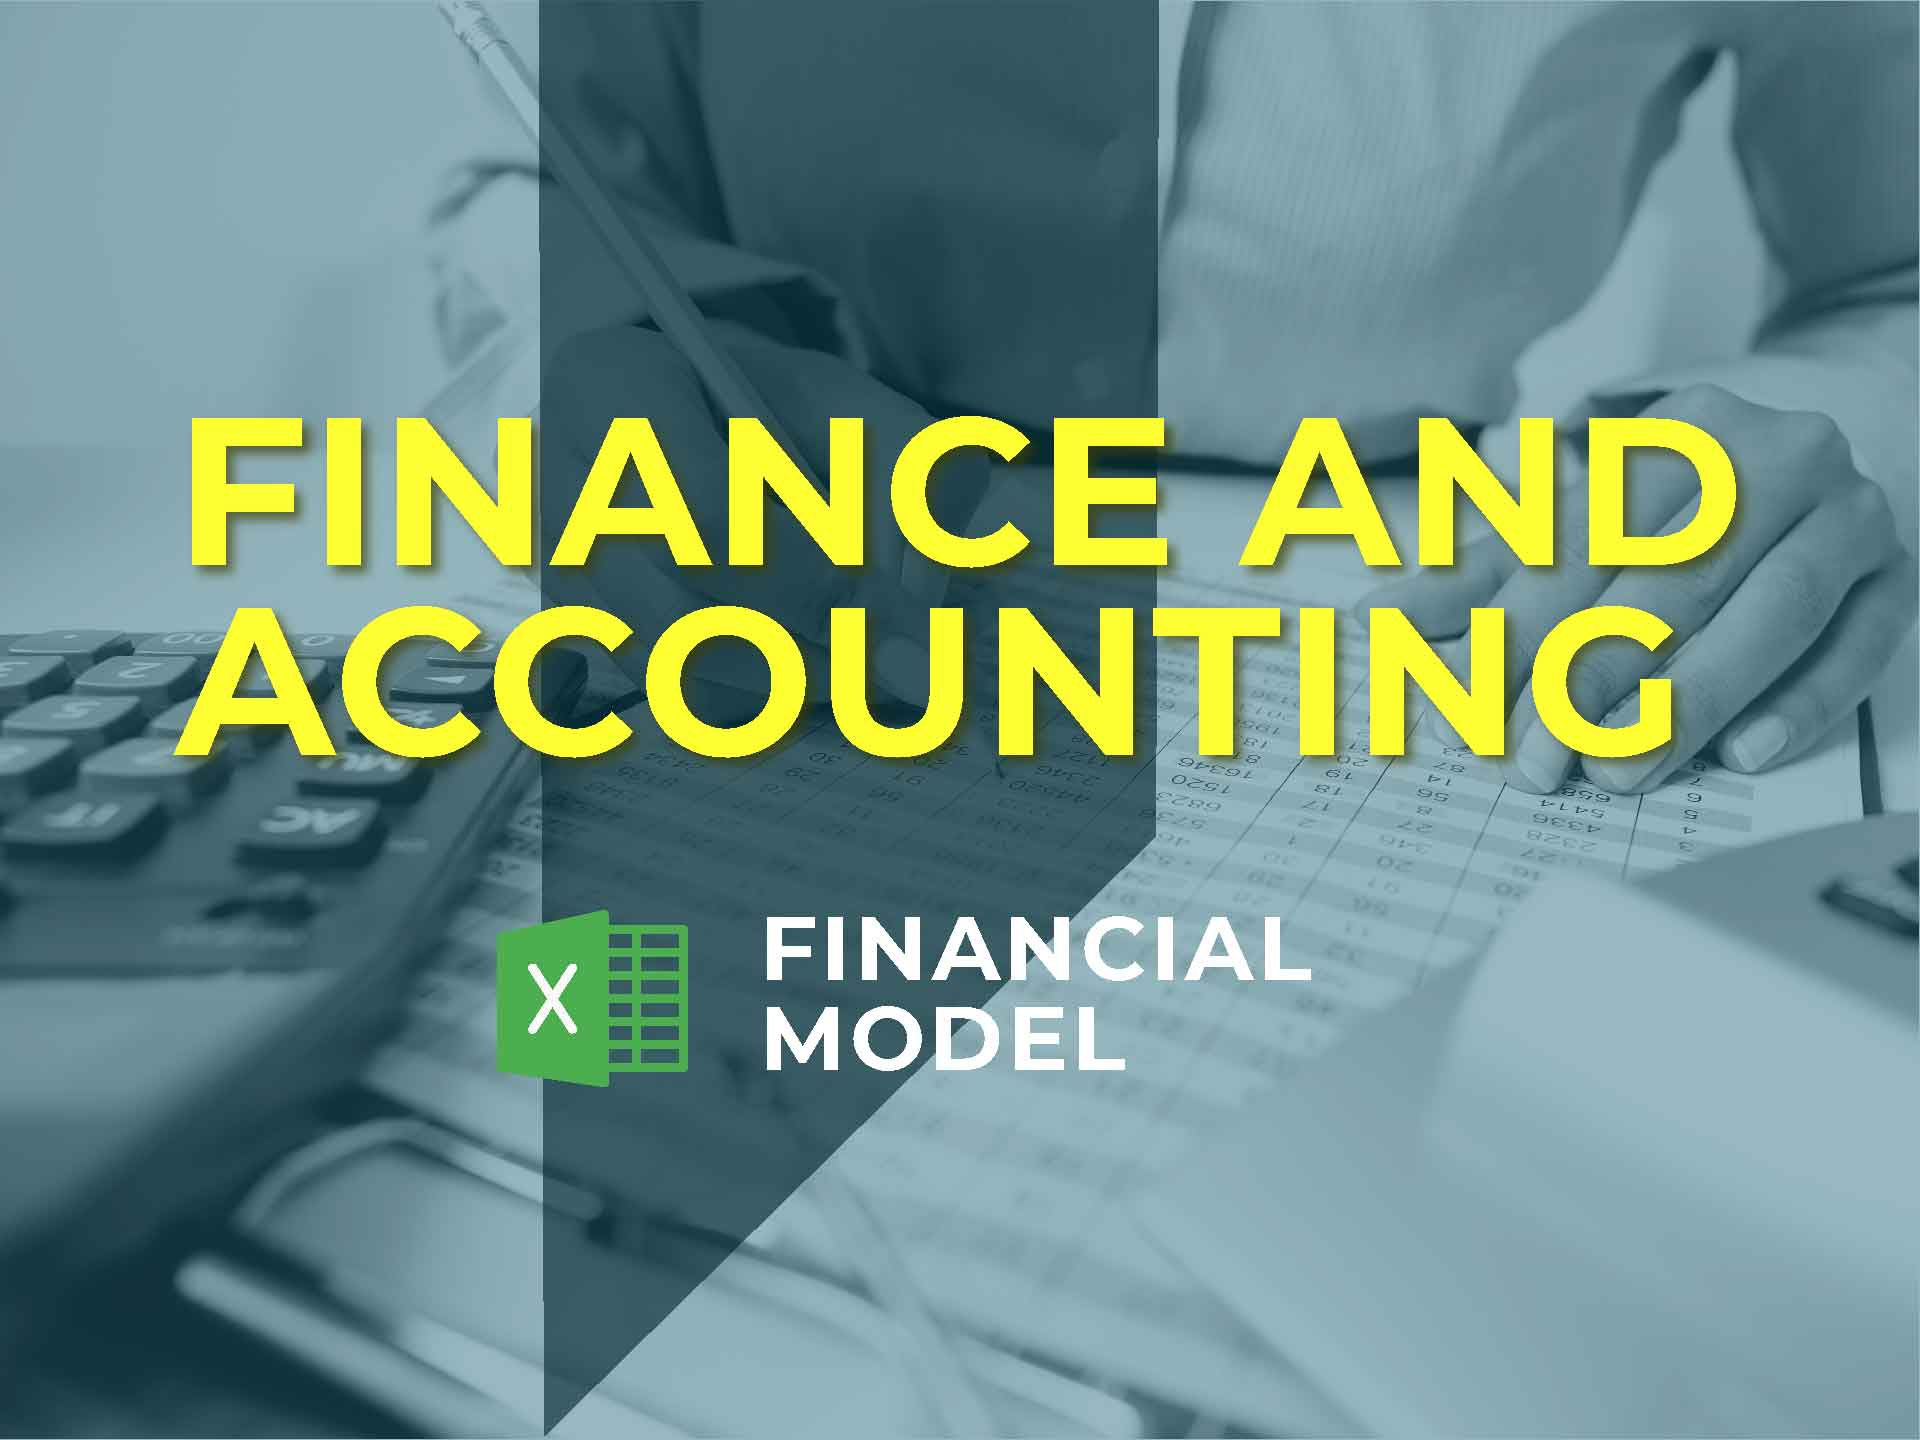 Accounting Software Financial Model Excel Template - Templarket -  Business Templates Marketplace